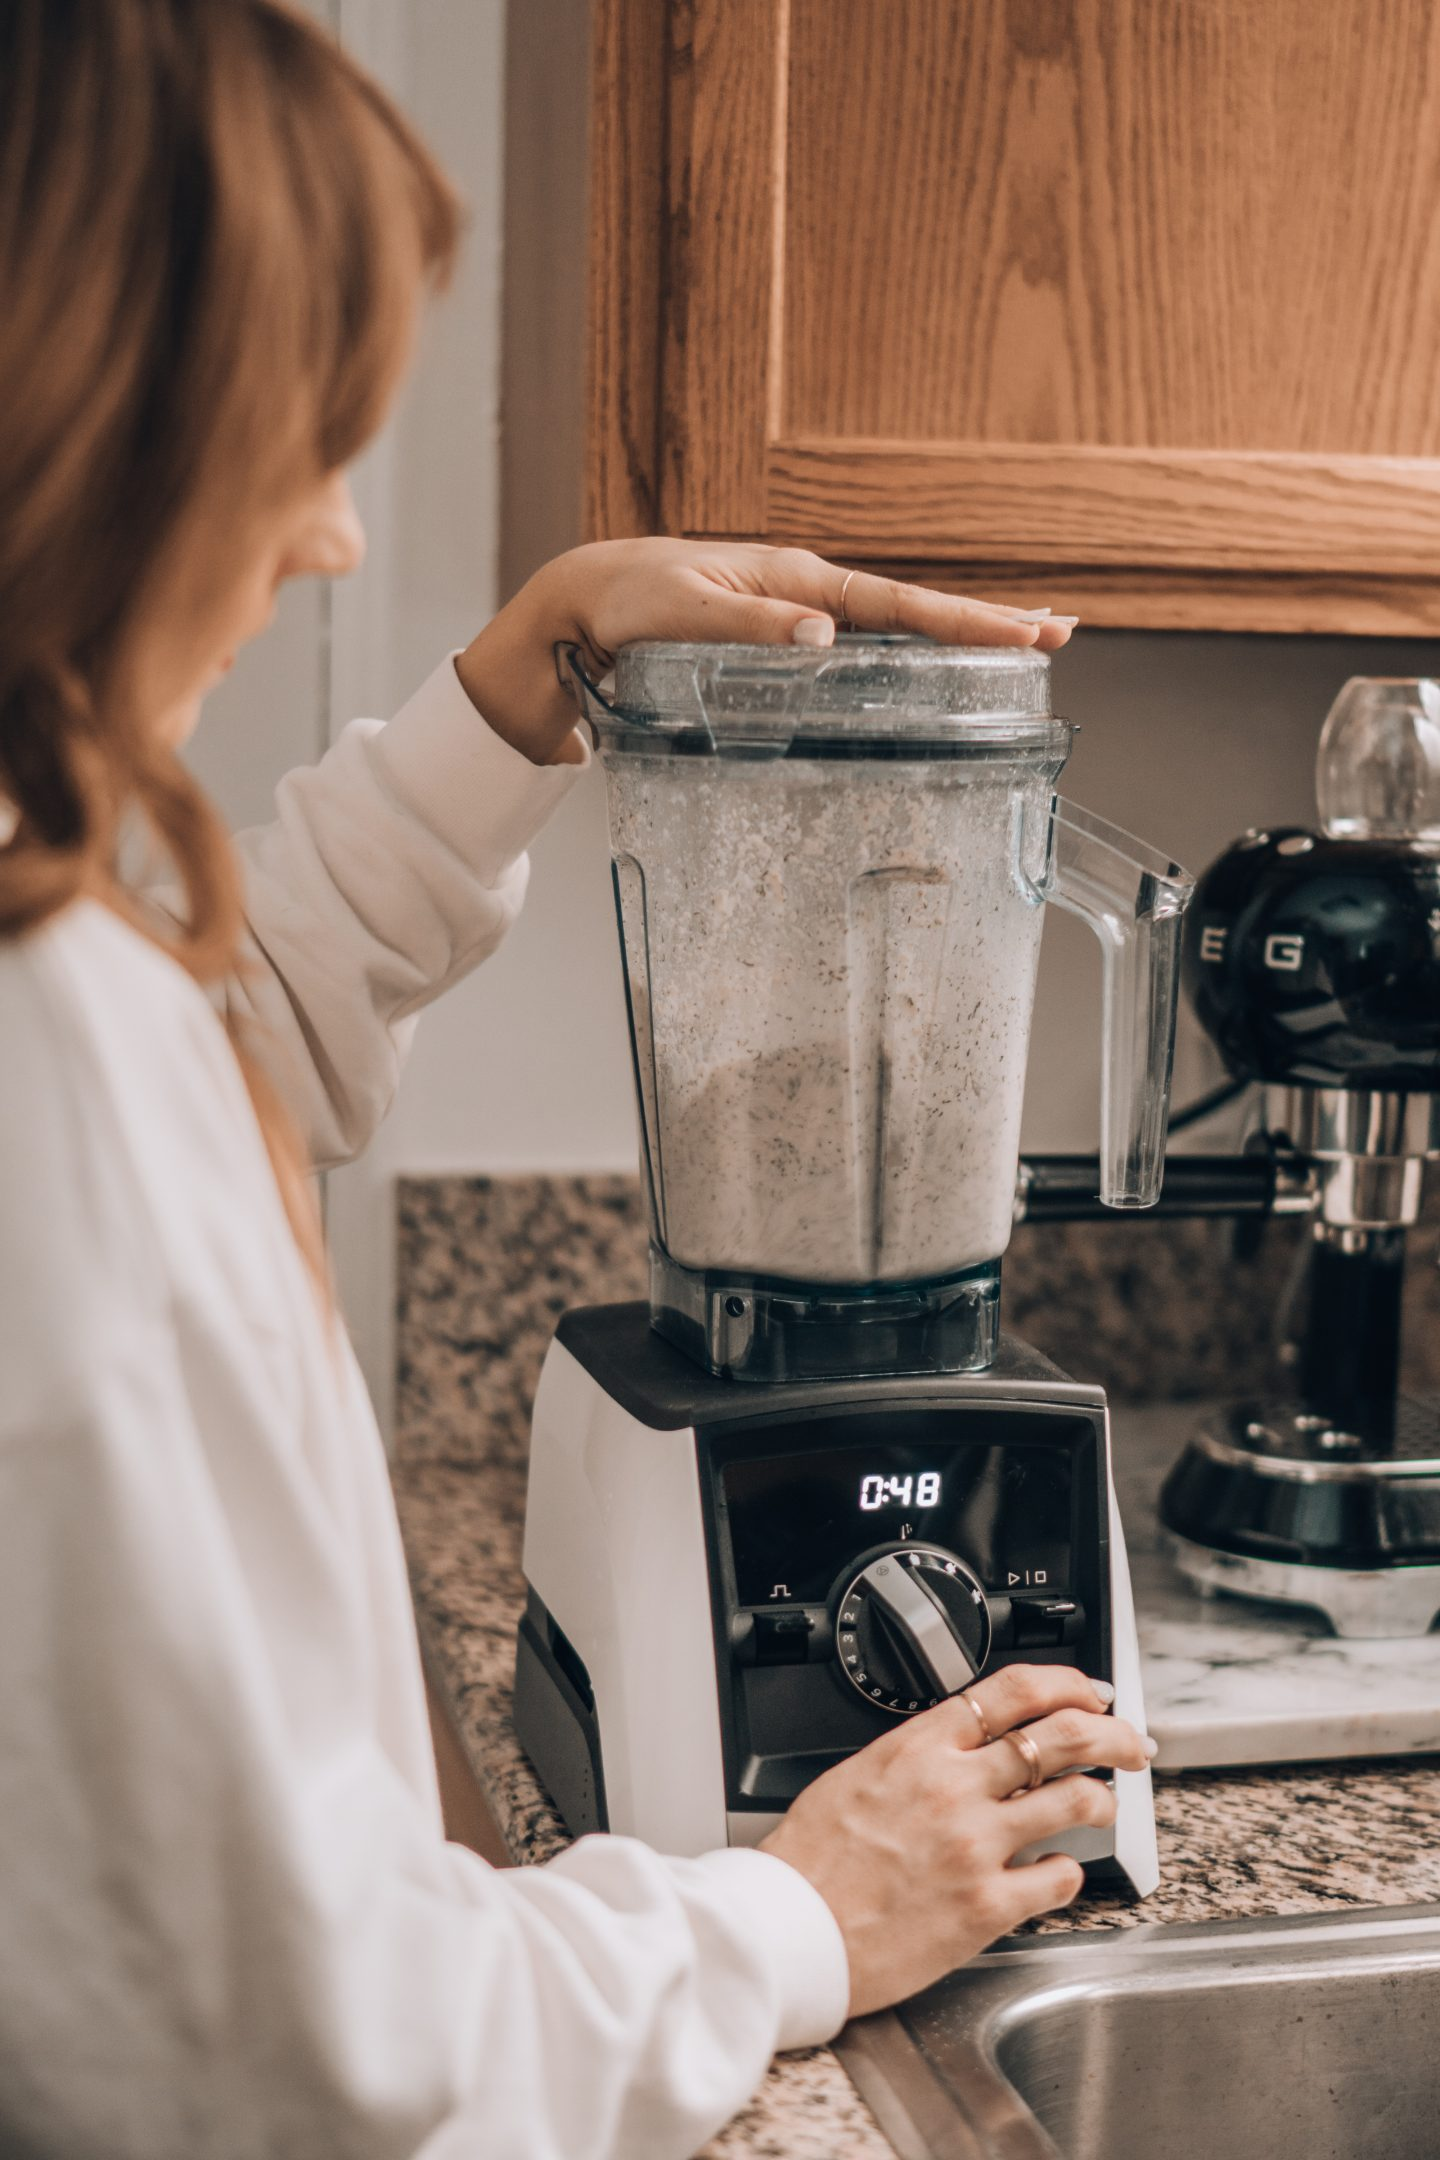 bed bath and beyond, vitamix blender, what to register for, how to register